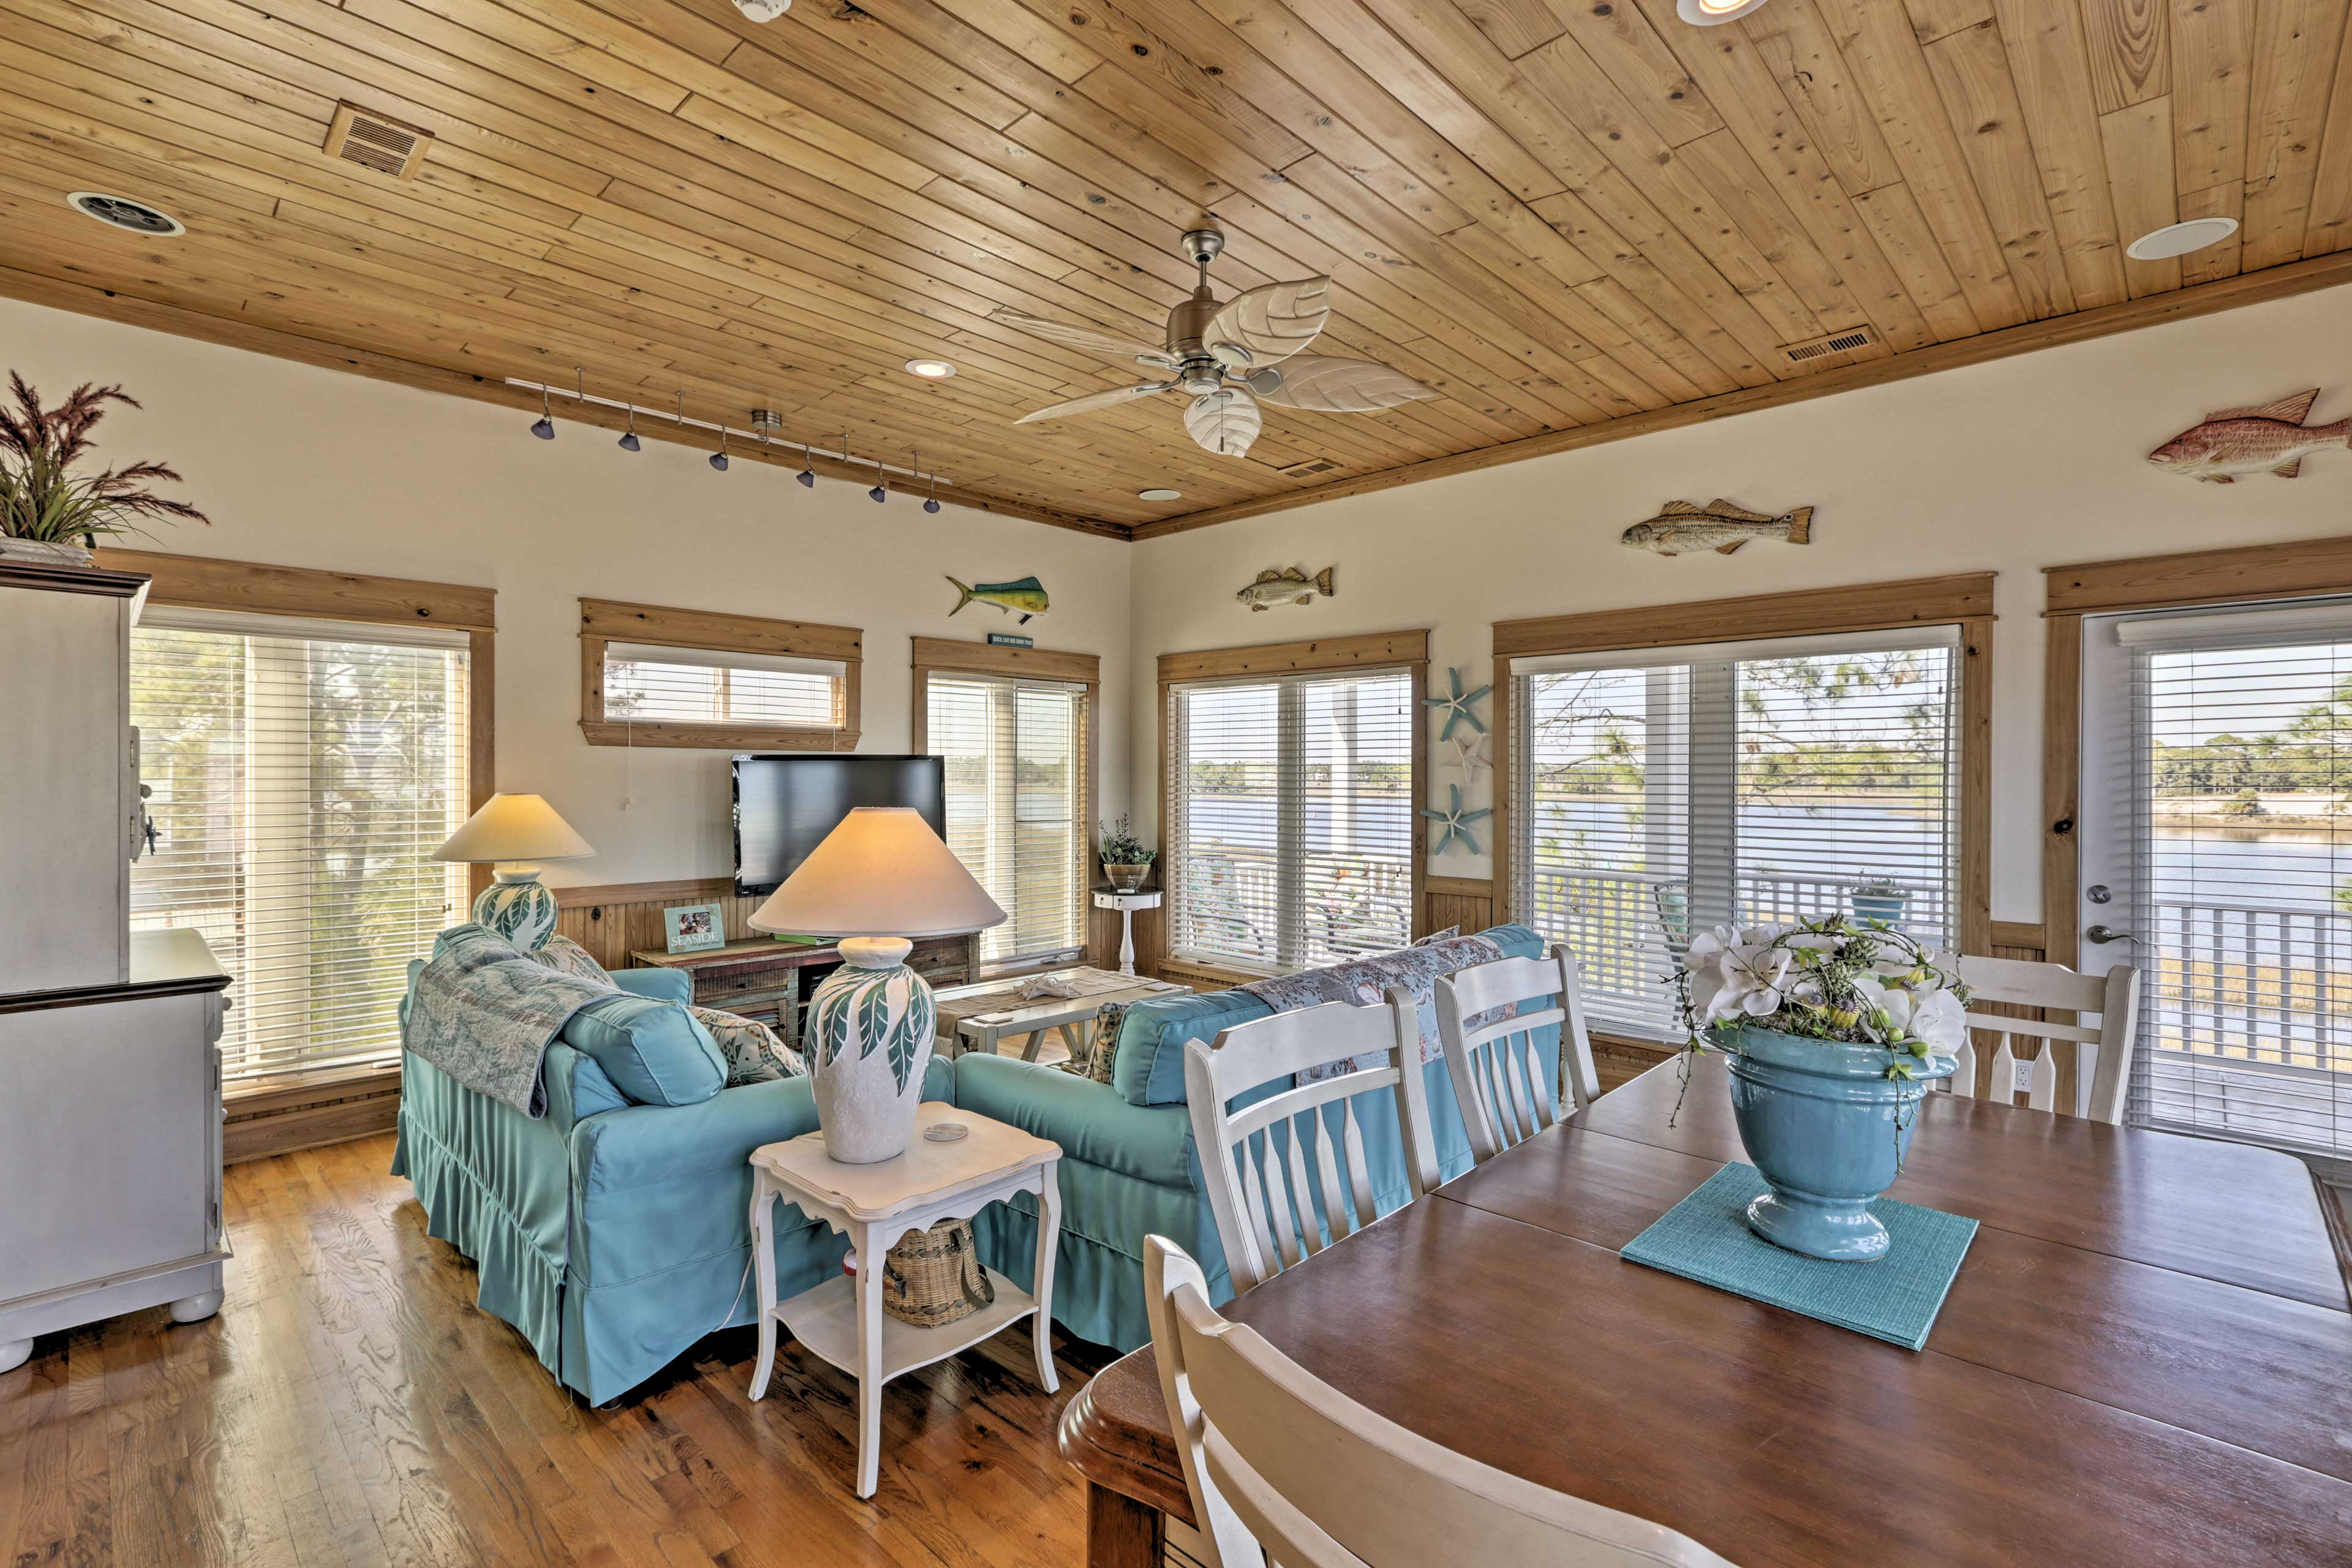 Hardwood floors and ceilings coupled with beach-themed accents elevate this home